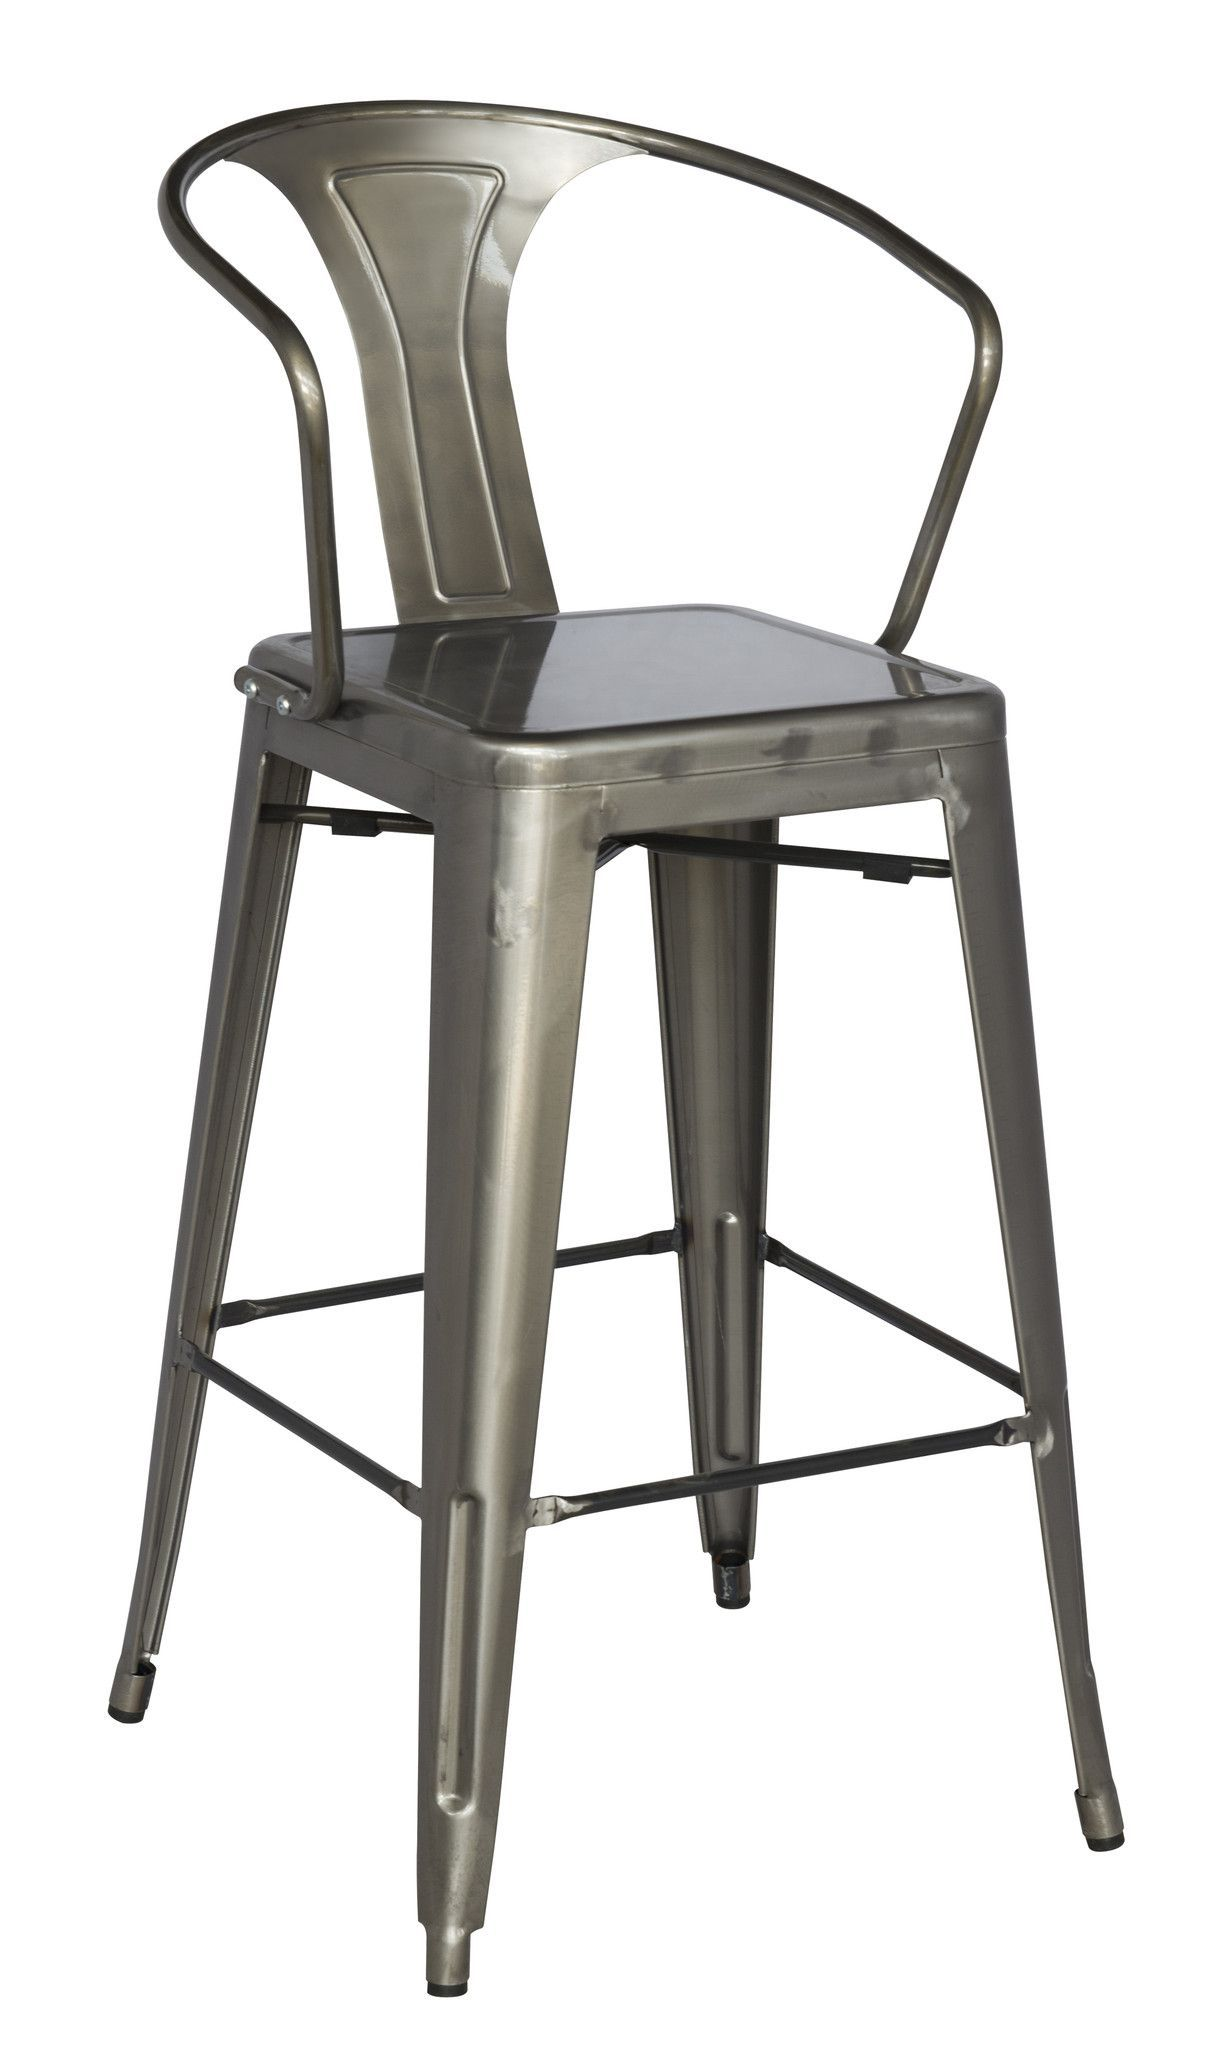 Galvanized Steel Bar Stool For Indoor And Outdoor Use. Approved For  Commercial Use.